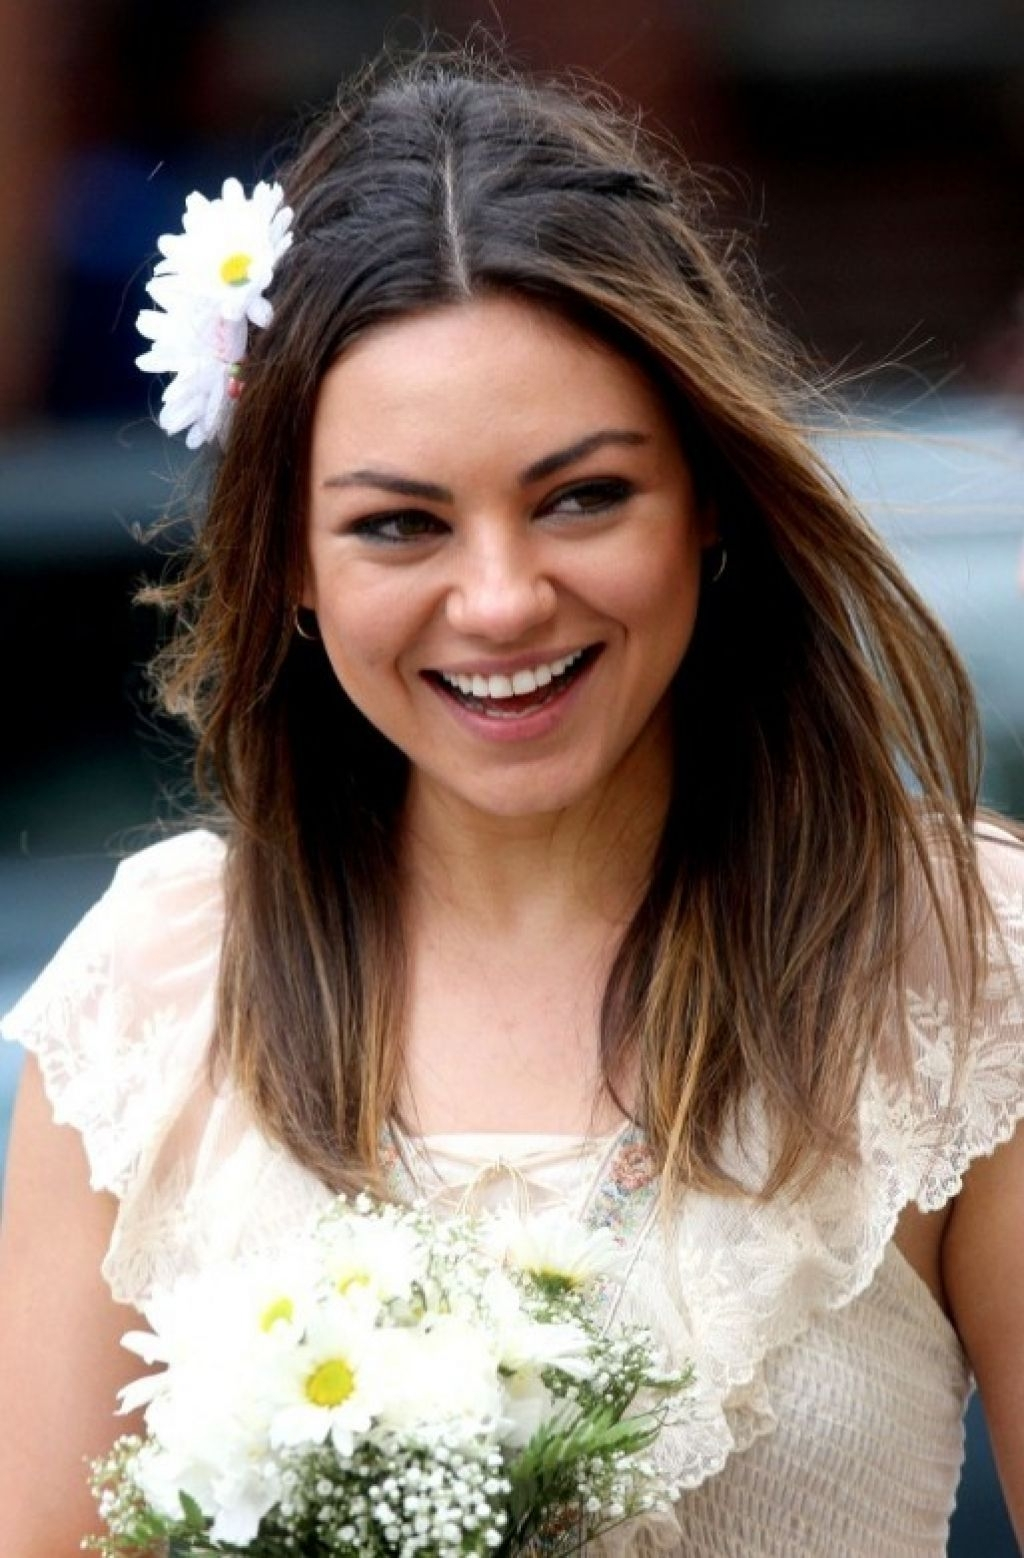 Wedding Hairstyles Ideas: Simple Straight All Down Medium Hair Intended For Latest Wedding Hairstyles For Shoulder Length Straight Hair (View 15 of 15)